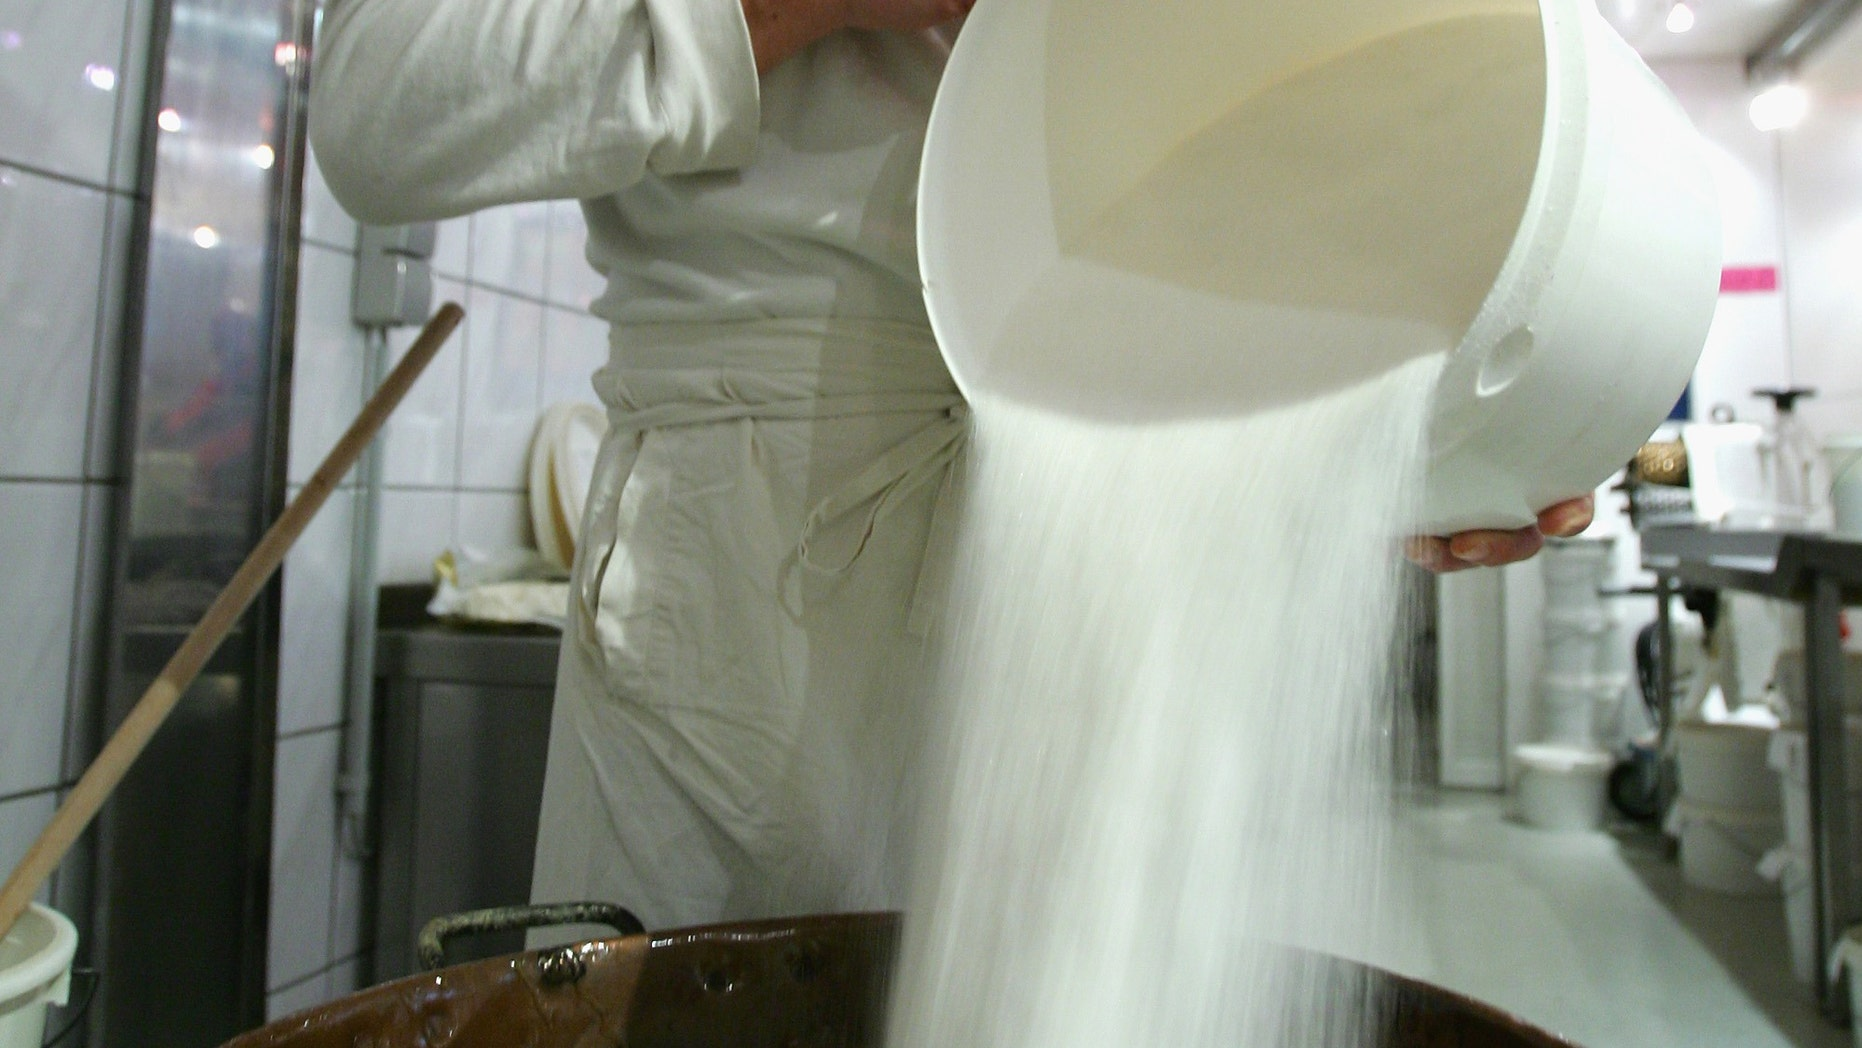 BERLIN - OCTOBER 12:  Hjalmar pours out sugar in a boiling pot on October 12, 2007 in Berlin, Germany. The Berlin based candy store produces 30 different kinds of handmade candies according traditional recipes.  (Photo by Andreas Rentz/Getty Images)